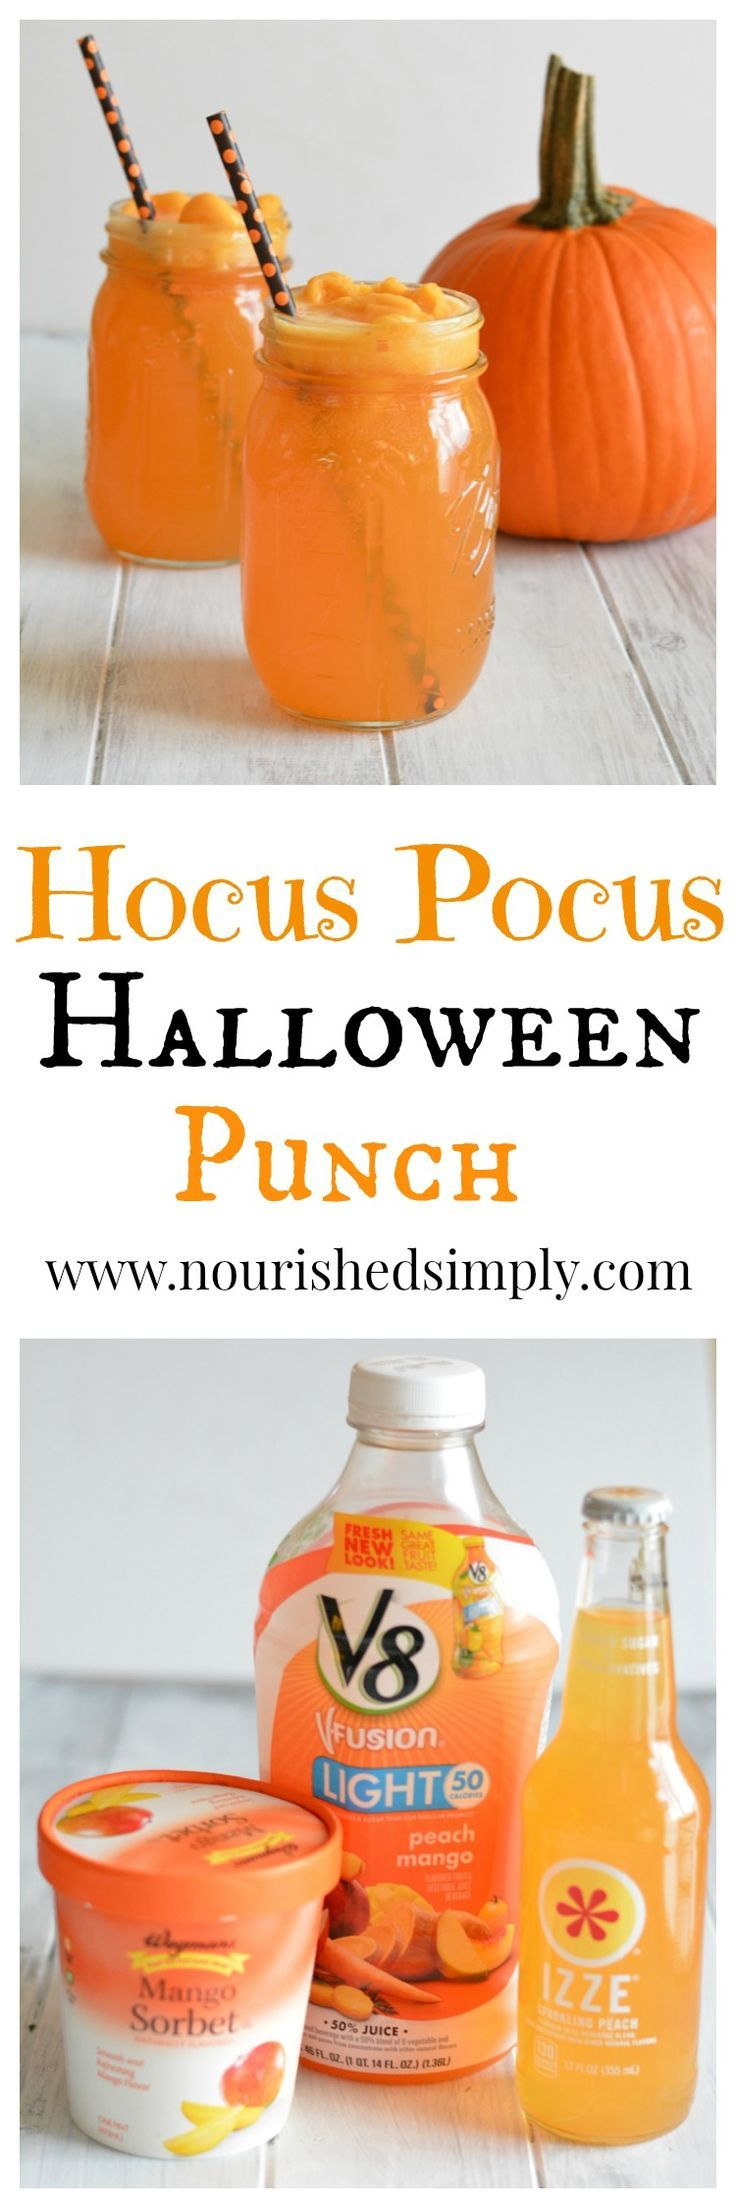 Watch Hocus Pocus on Halloween and have one of these drinks to go with it. Great for the whole family!